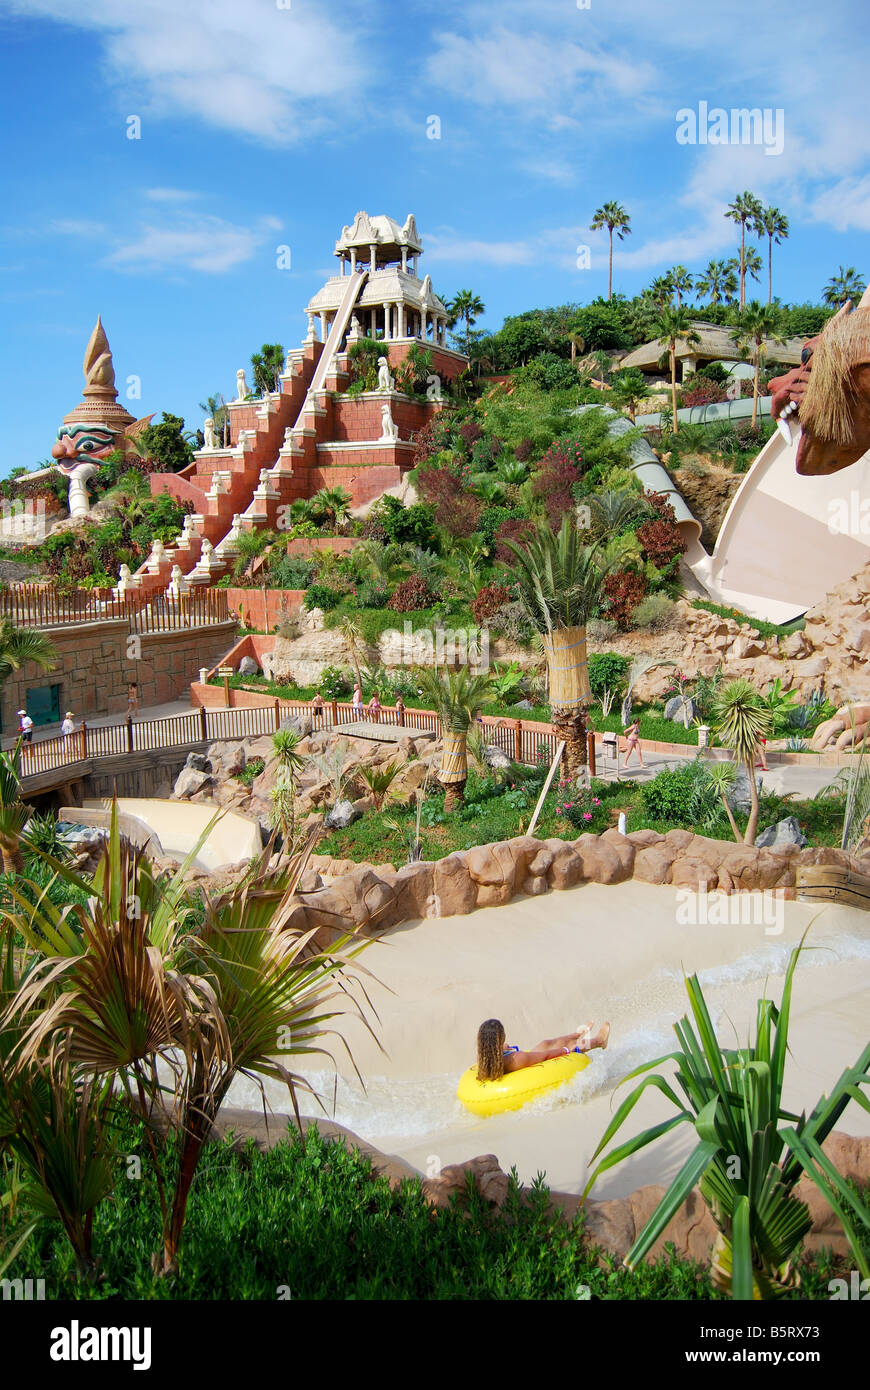 Tower of Power ride, Siam Park Water Kingdom Theme Park ...